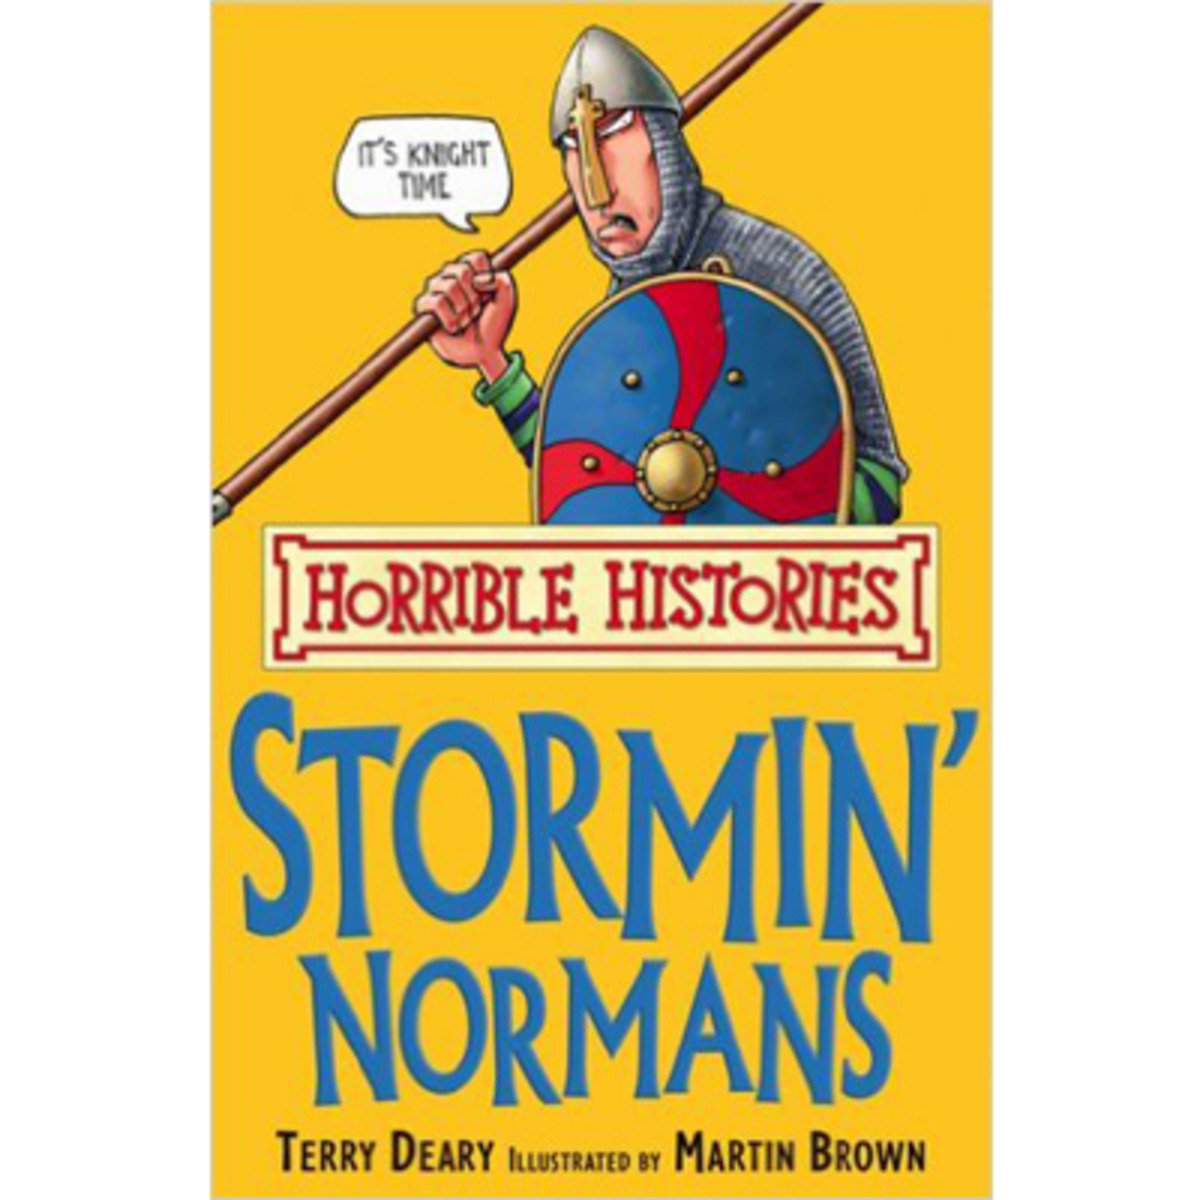 HORRIBLE HISTORIES: THE STORMIN' NORMANS 9781407104300